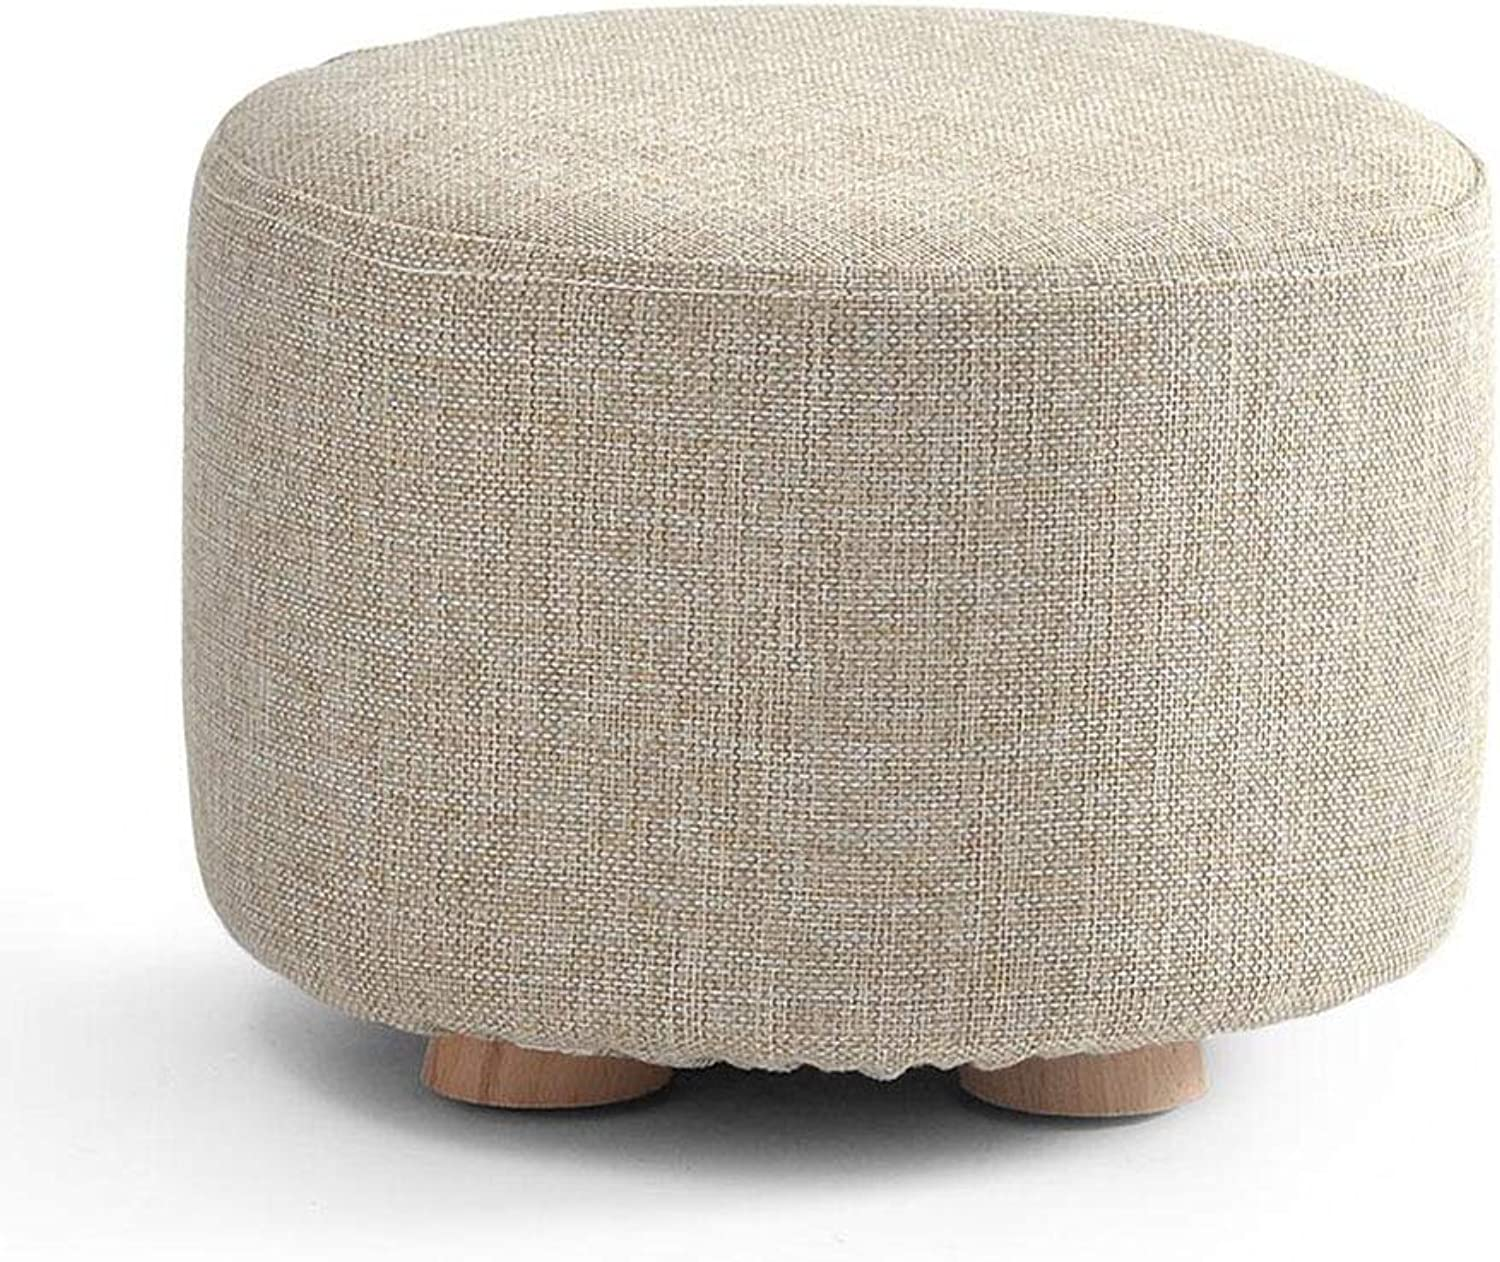 XUERUI Furniture Stools Chair Footstool Upholstered Modern Luxury Round Pouffe Stool Wooden Leg Pattern Round Fabric Strong Stability (color   T3)